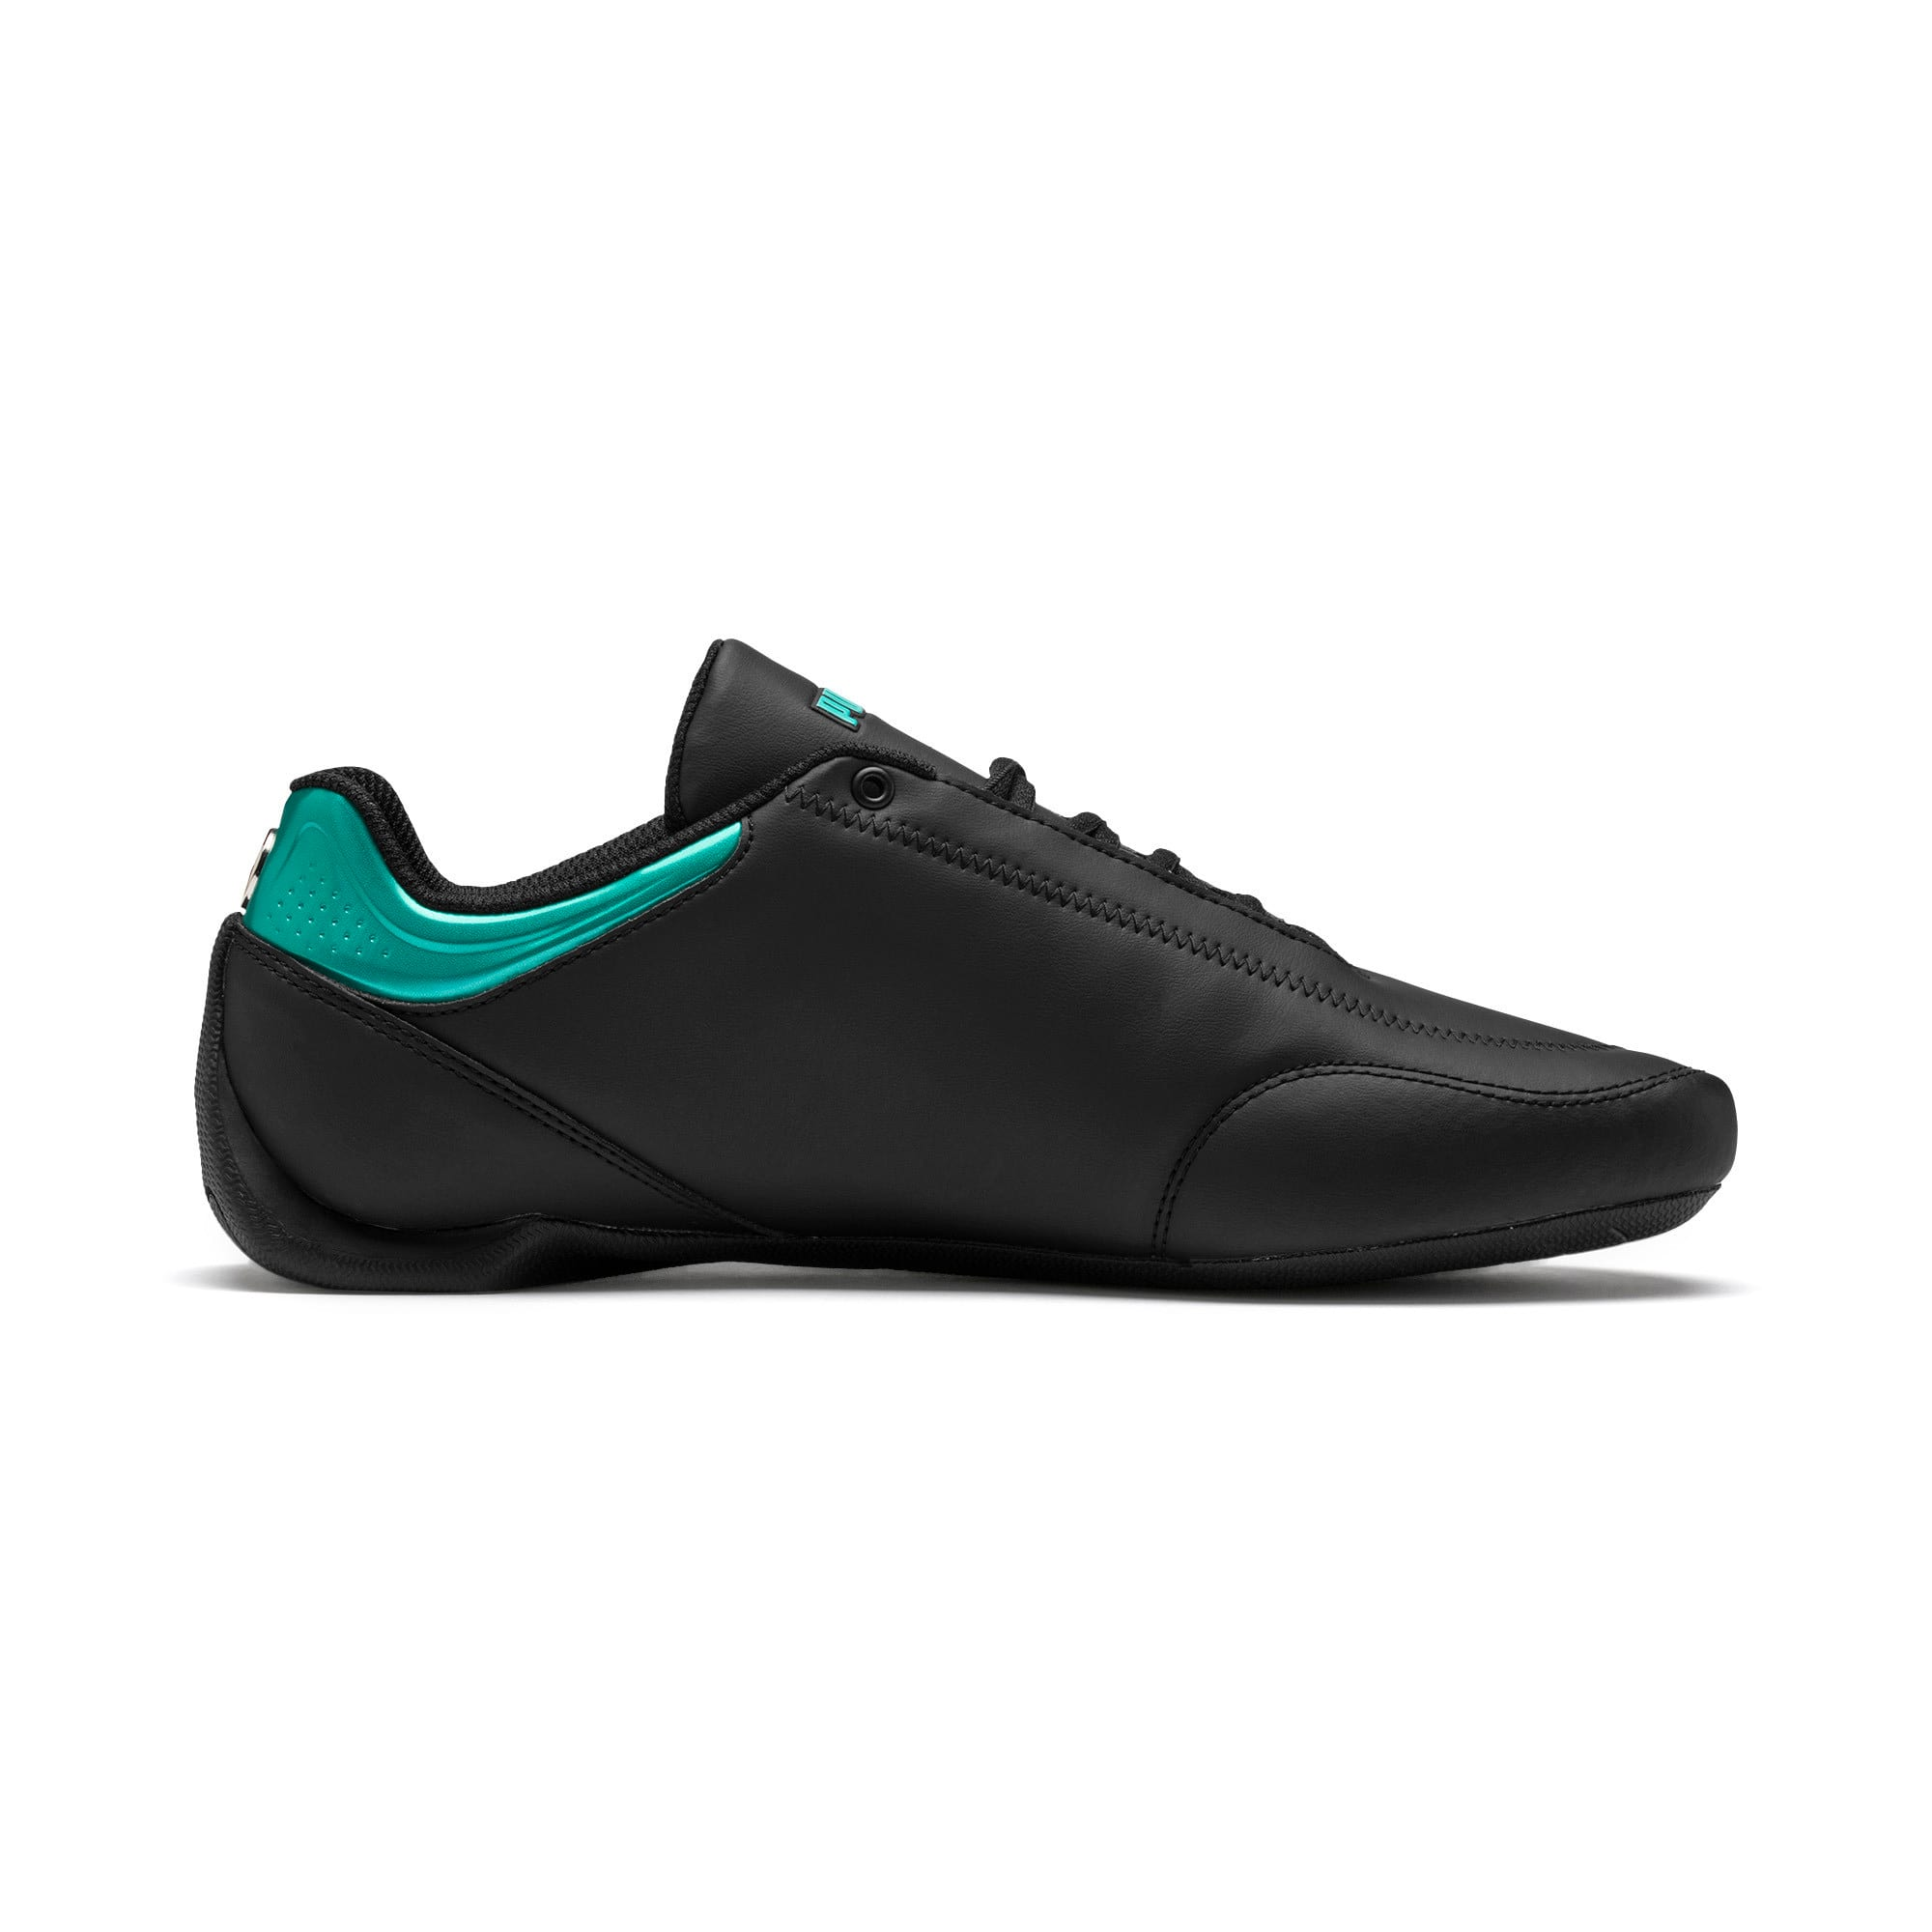 Thumbnail 6 of Mercedes AMG Petronas Motorsport Future Kart Cat Trainers, Puma Black-Smoked Pearl, medium